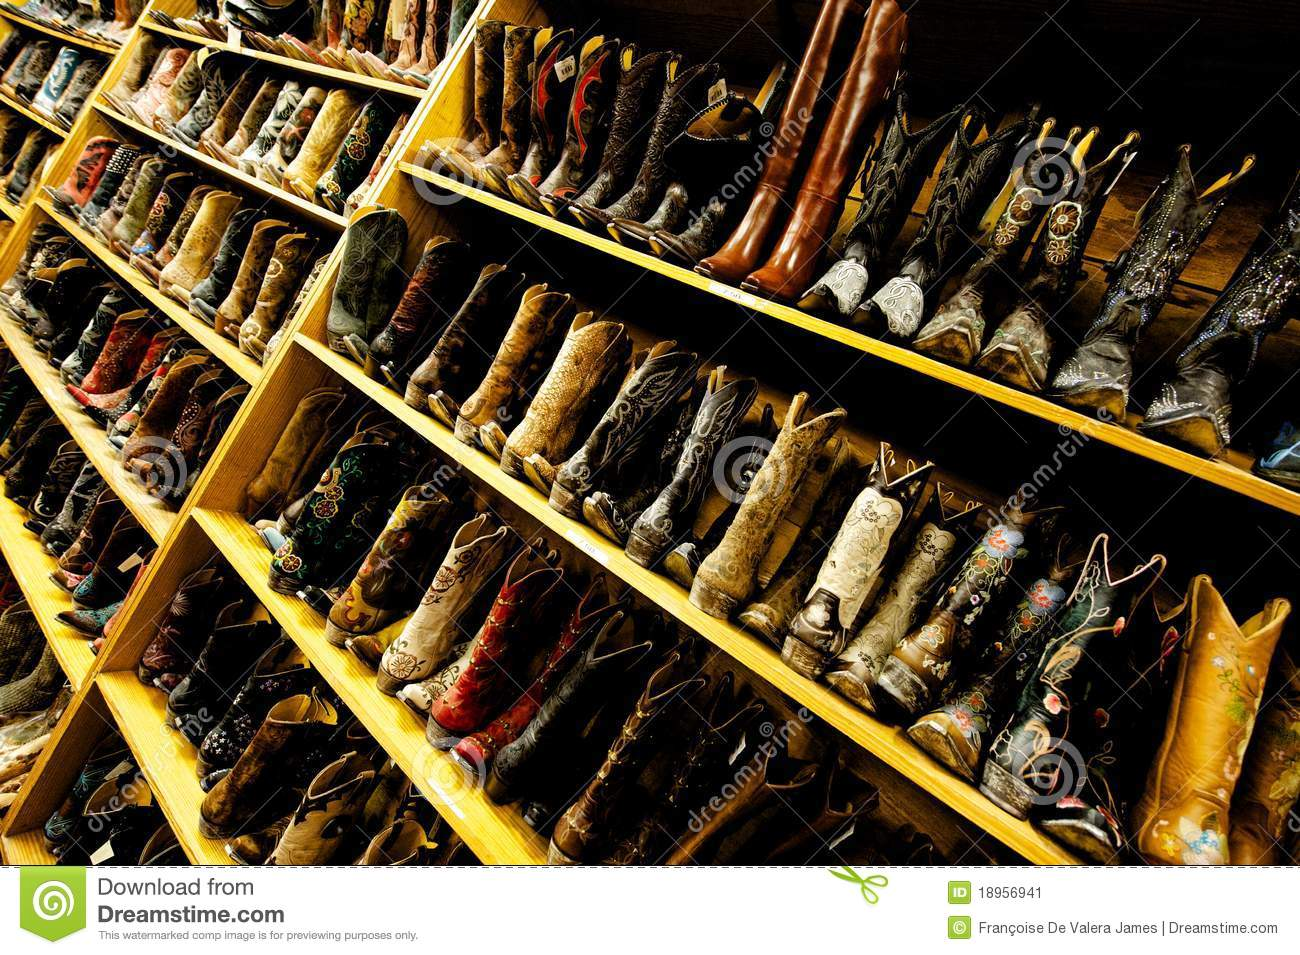 Women's Boots - Overstock Shopping - Trendy, Designer Shoes